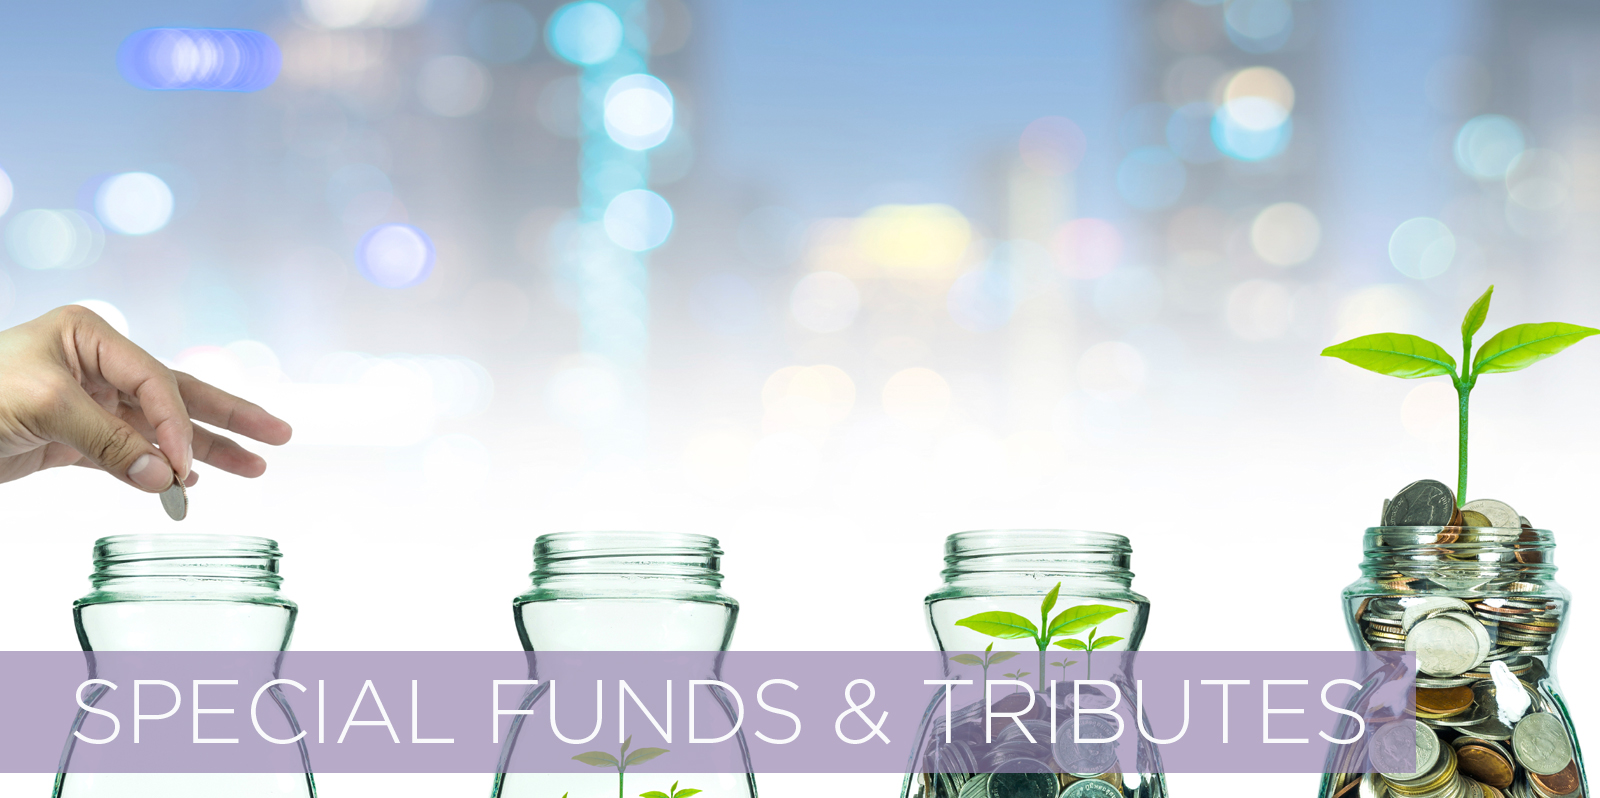 /home/templeis/public_html/images/header_image/1501872151header_imageSpecial Funds and Tributes.jpg.